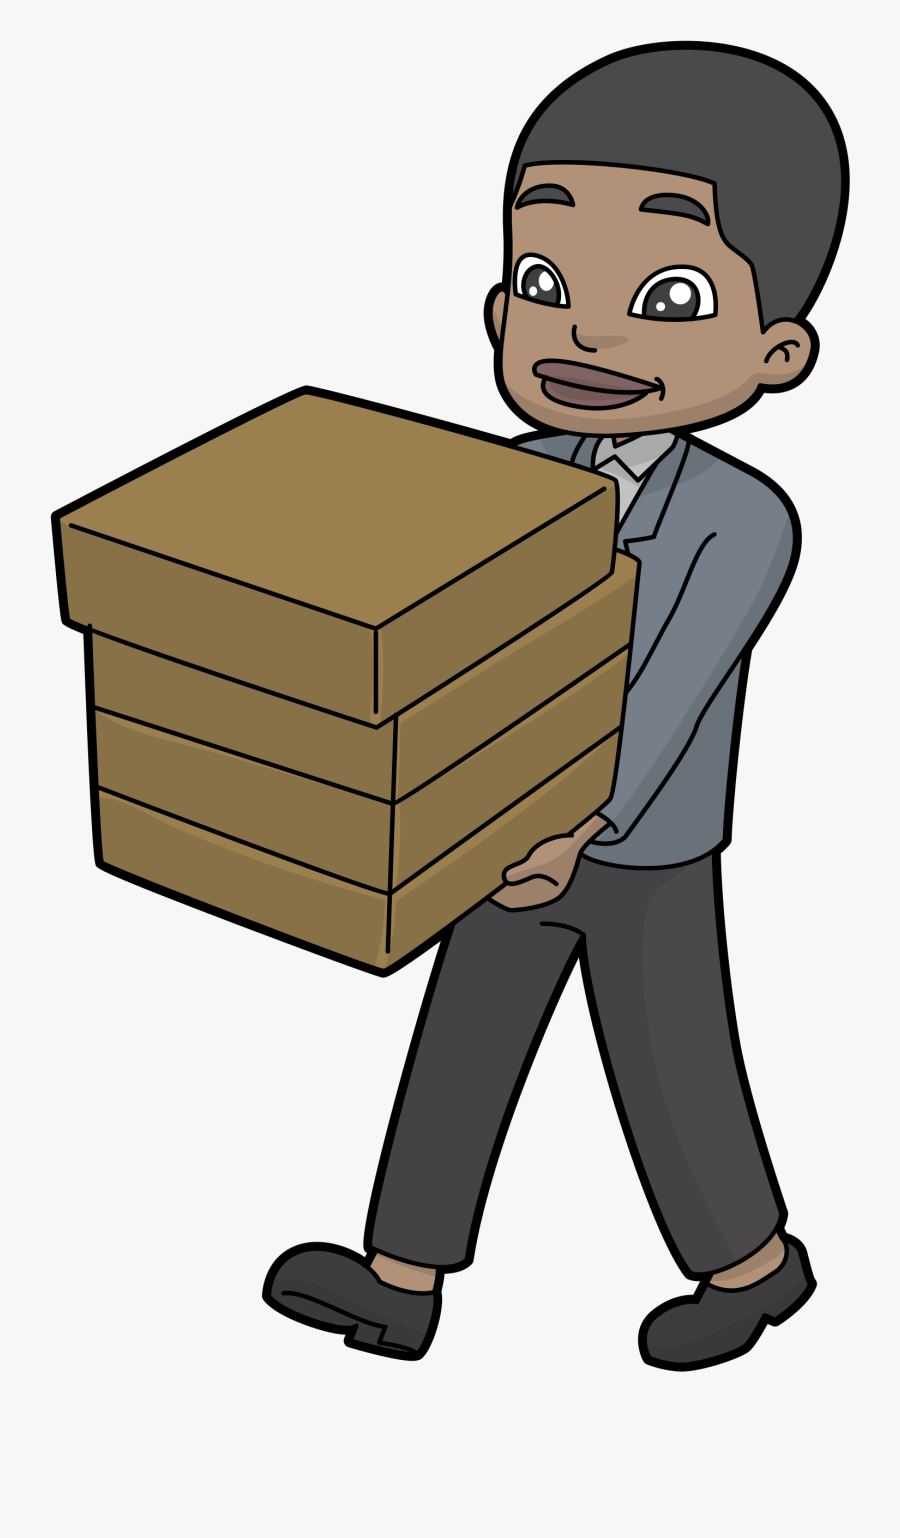 Carrying Boxes Png - Anime Guy Carrying Box, Transparent Clipart